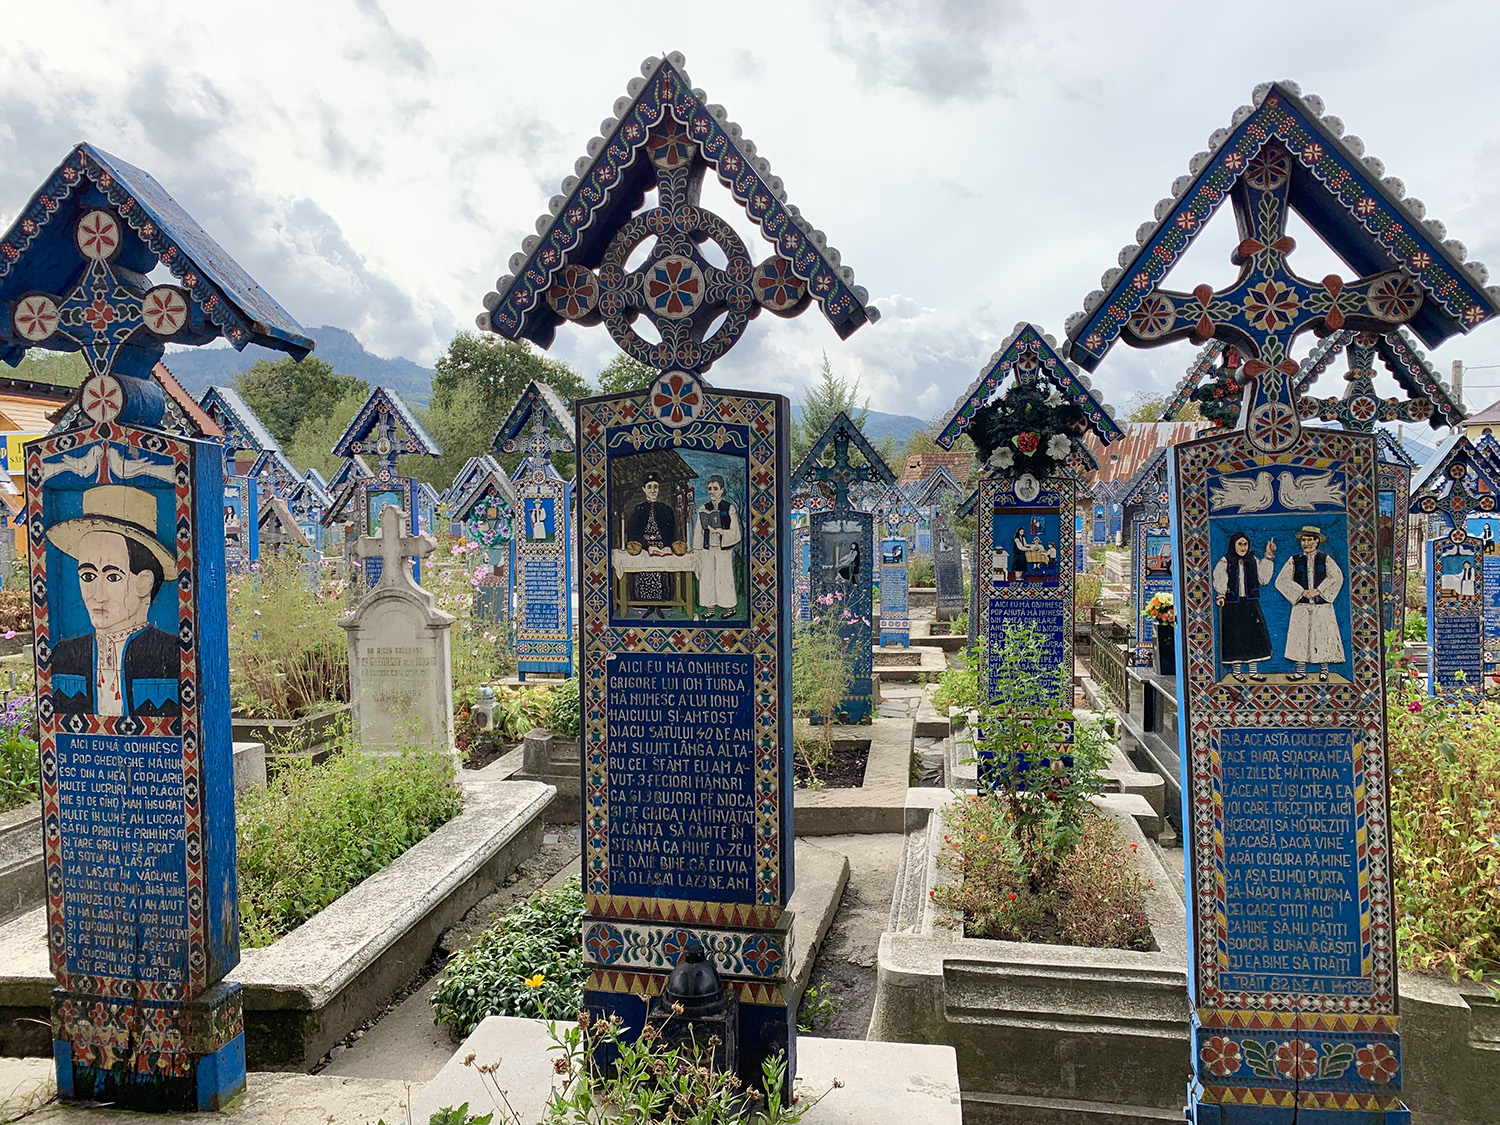 The Quirky cemetery in Sapanta, Maramures.